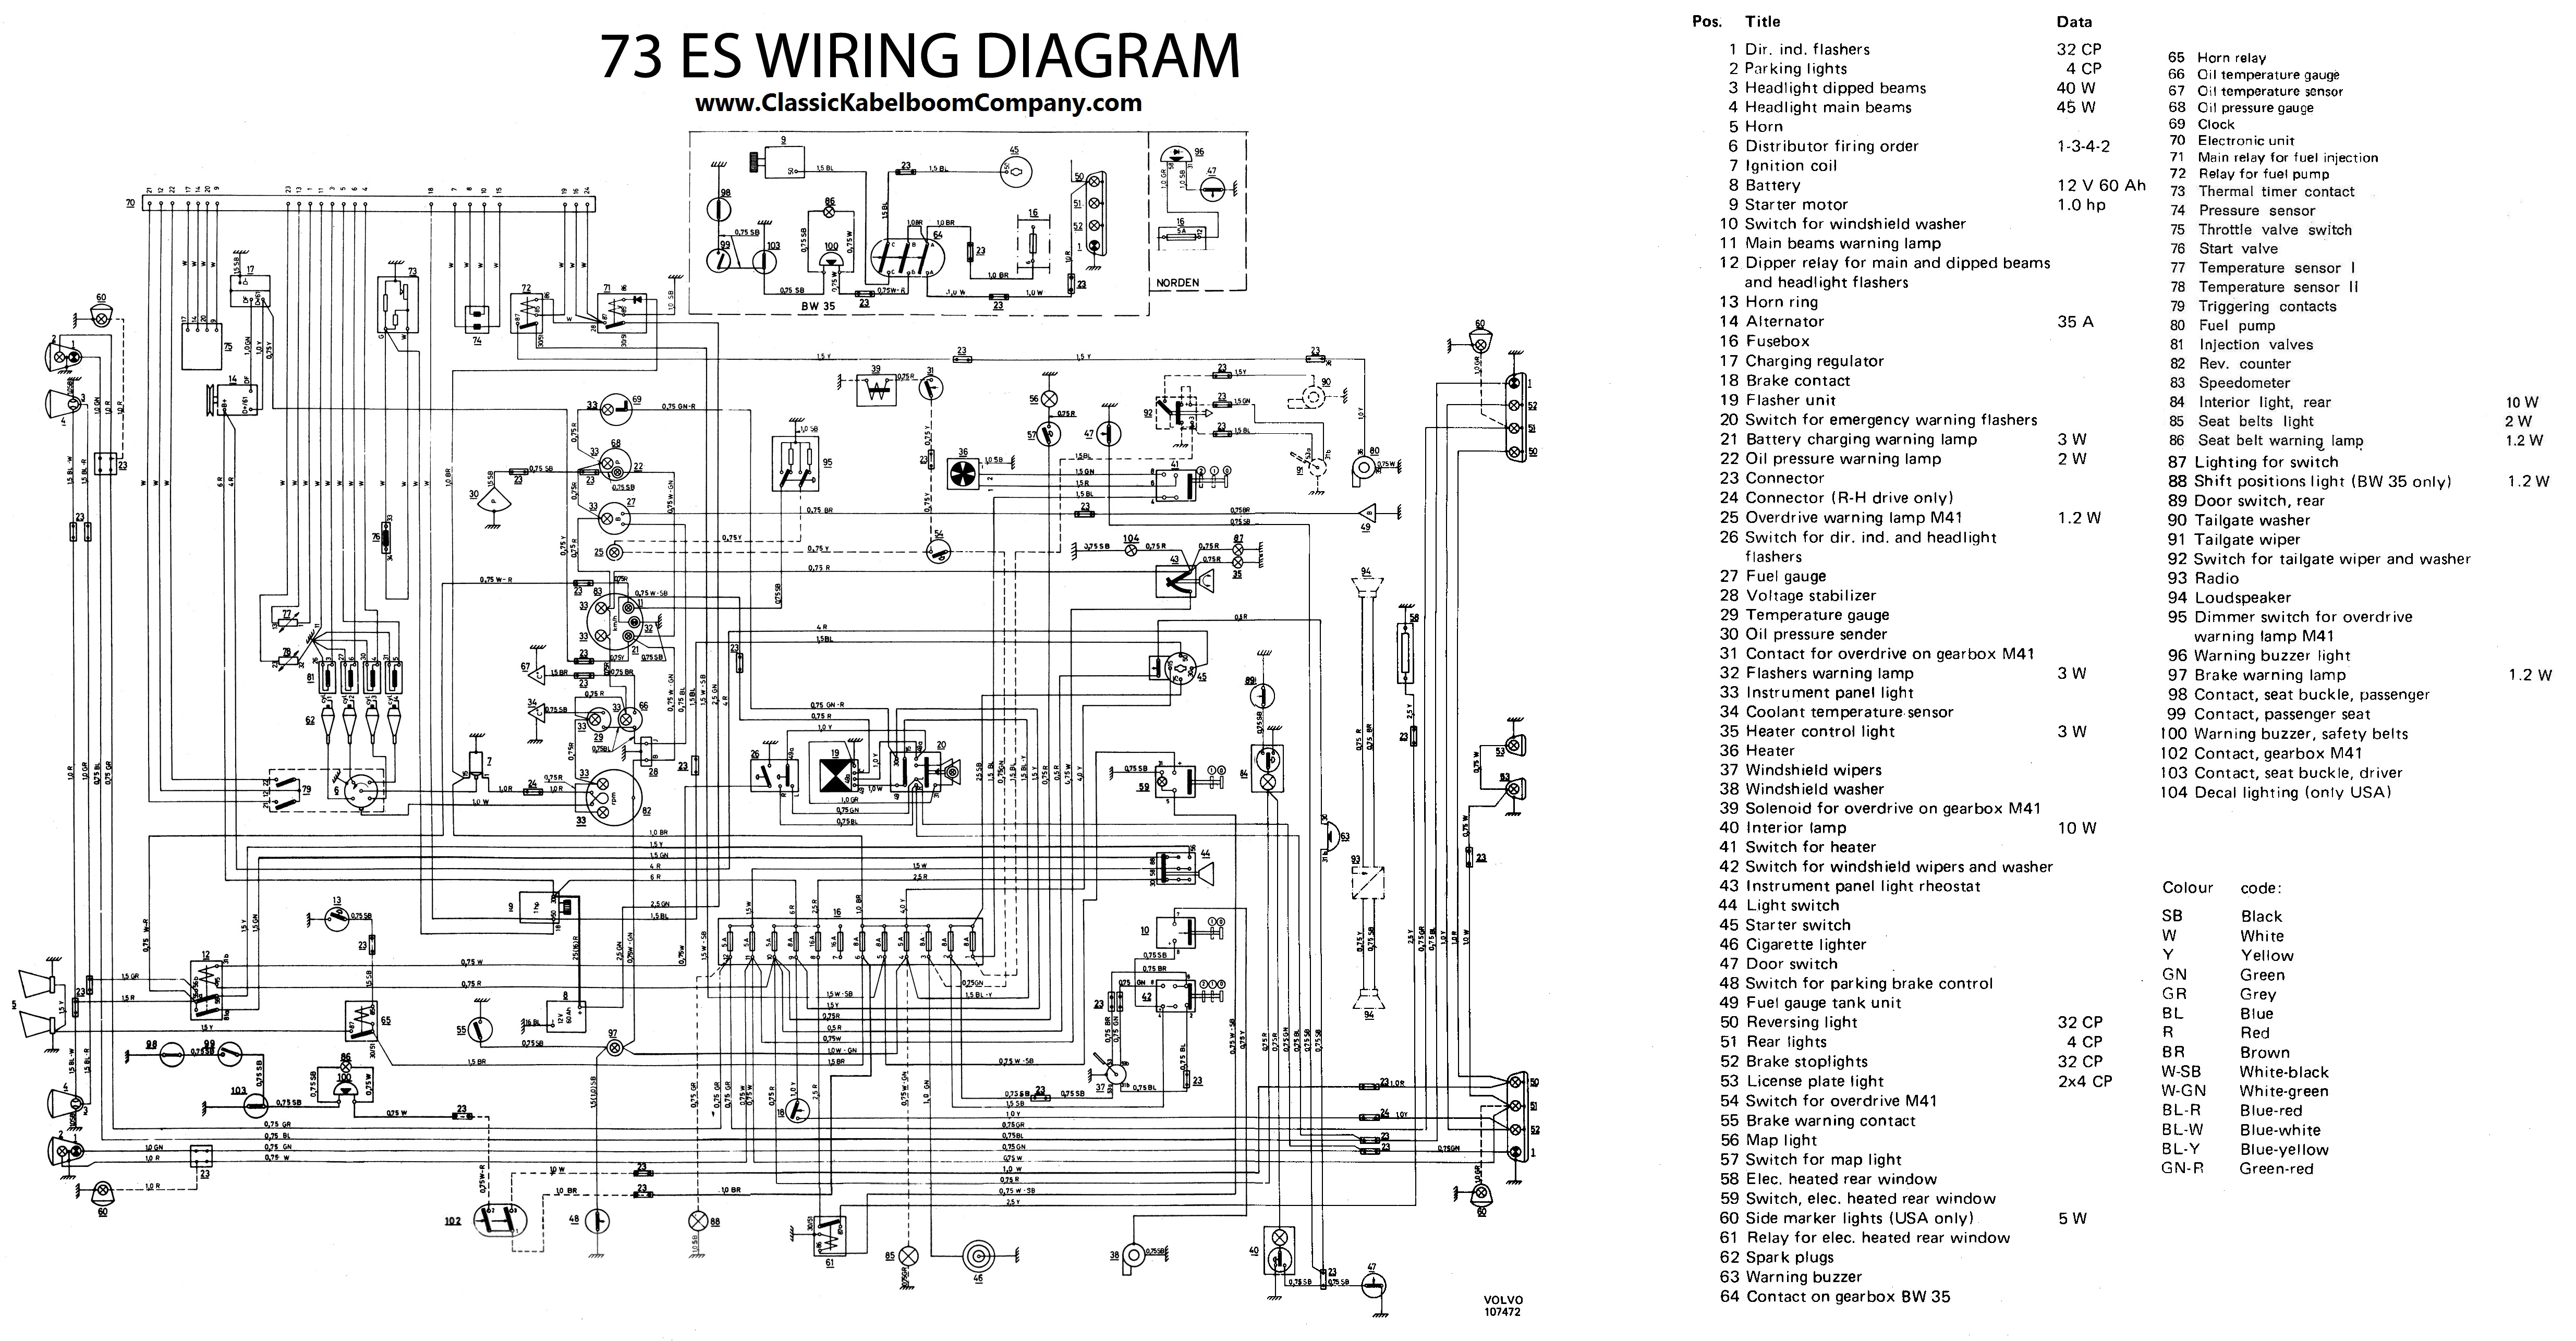 volvo truck fuse panel diagram 01 mustang wiring harness, Wiring diagram